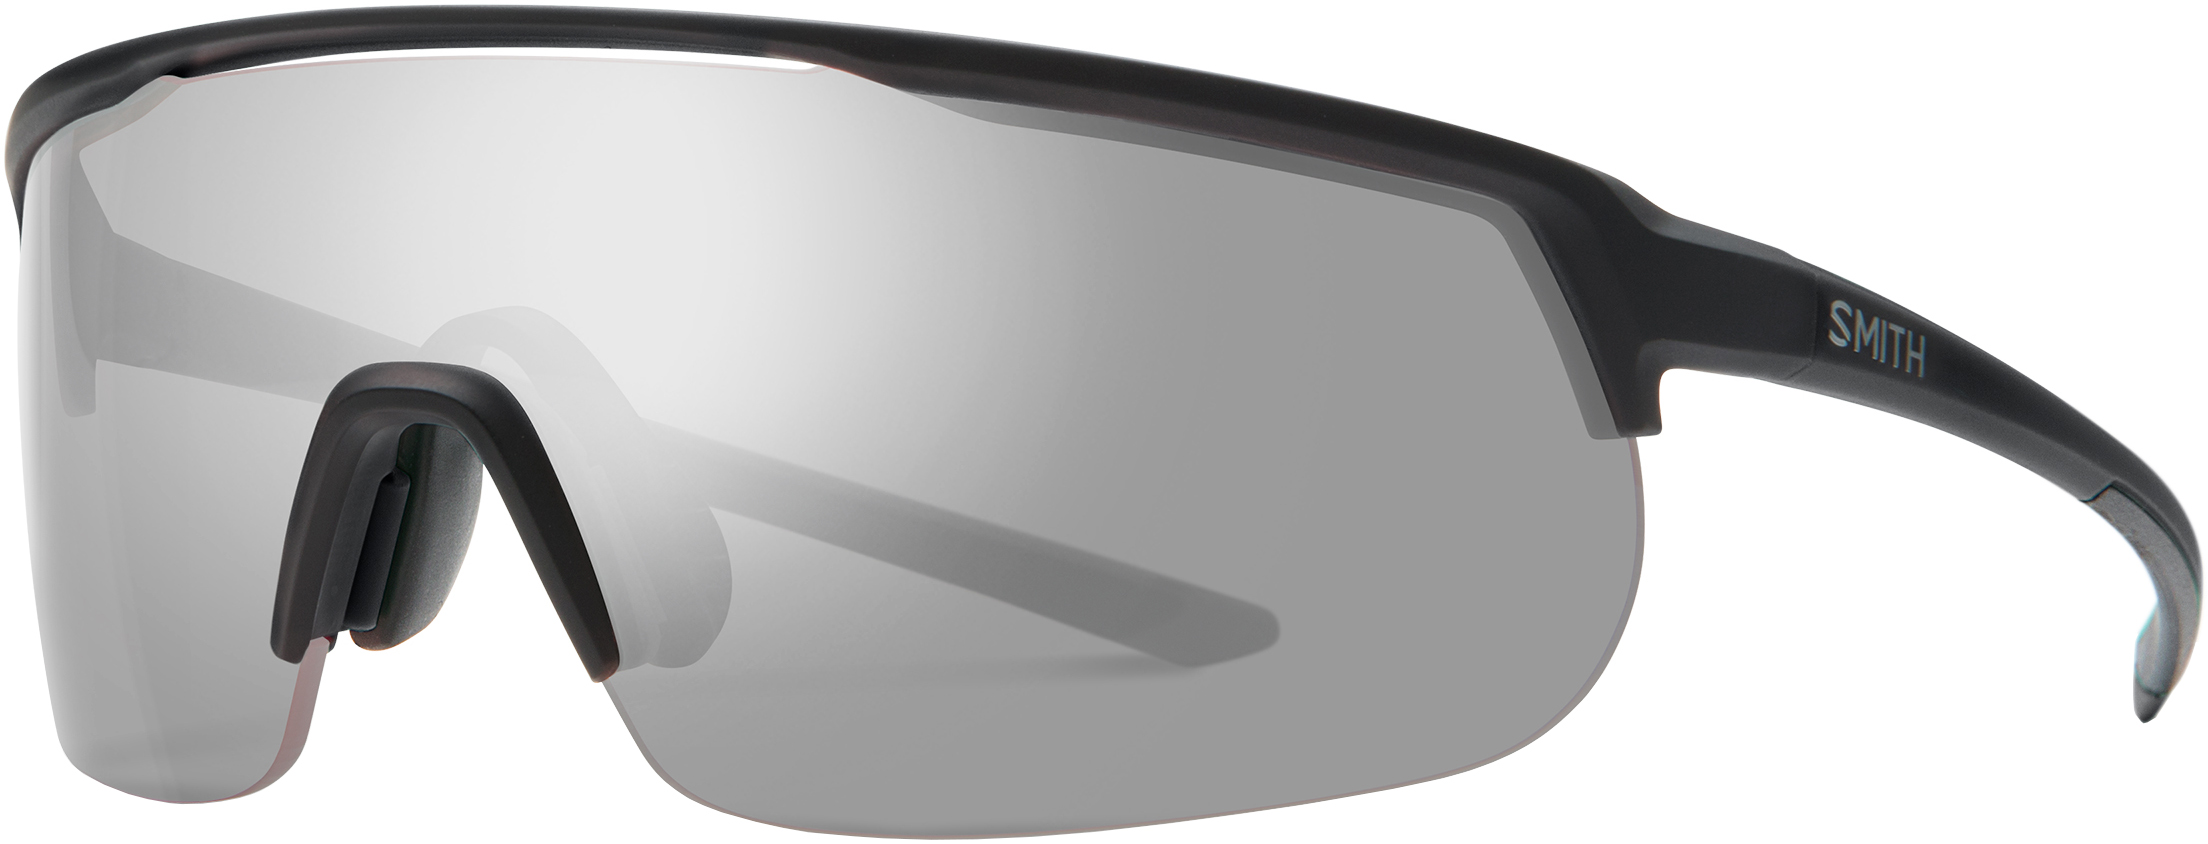 Smith Optics Trackstand Cycling Glasses | Glasses